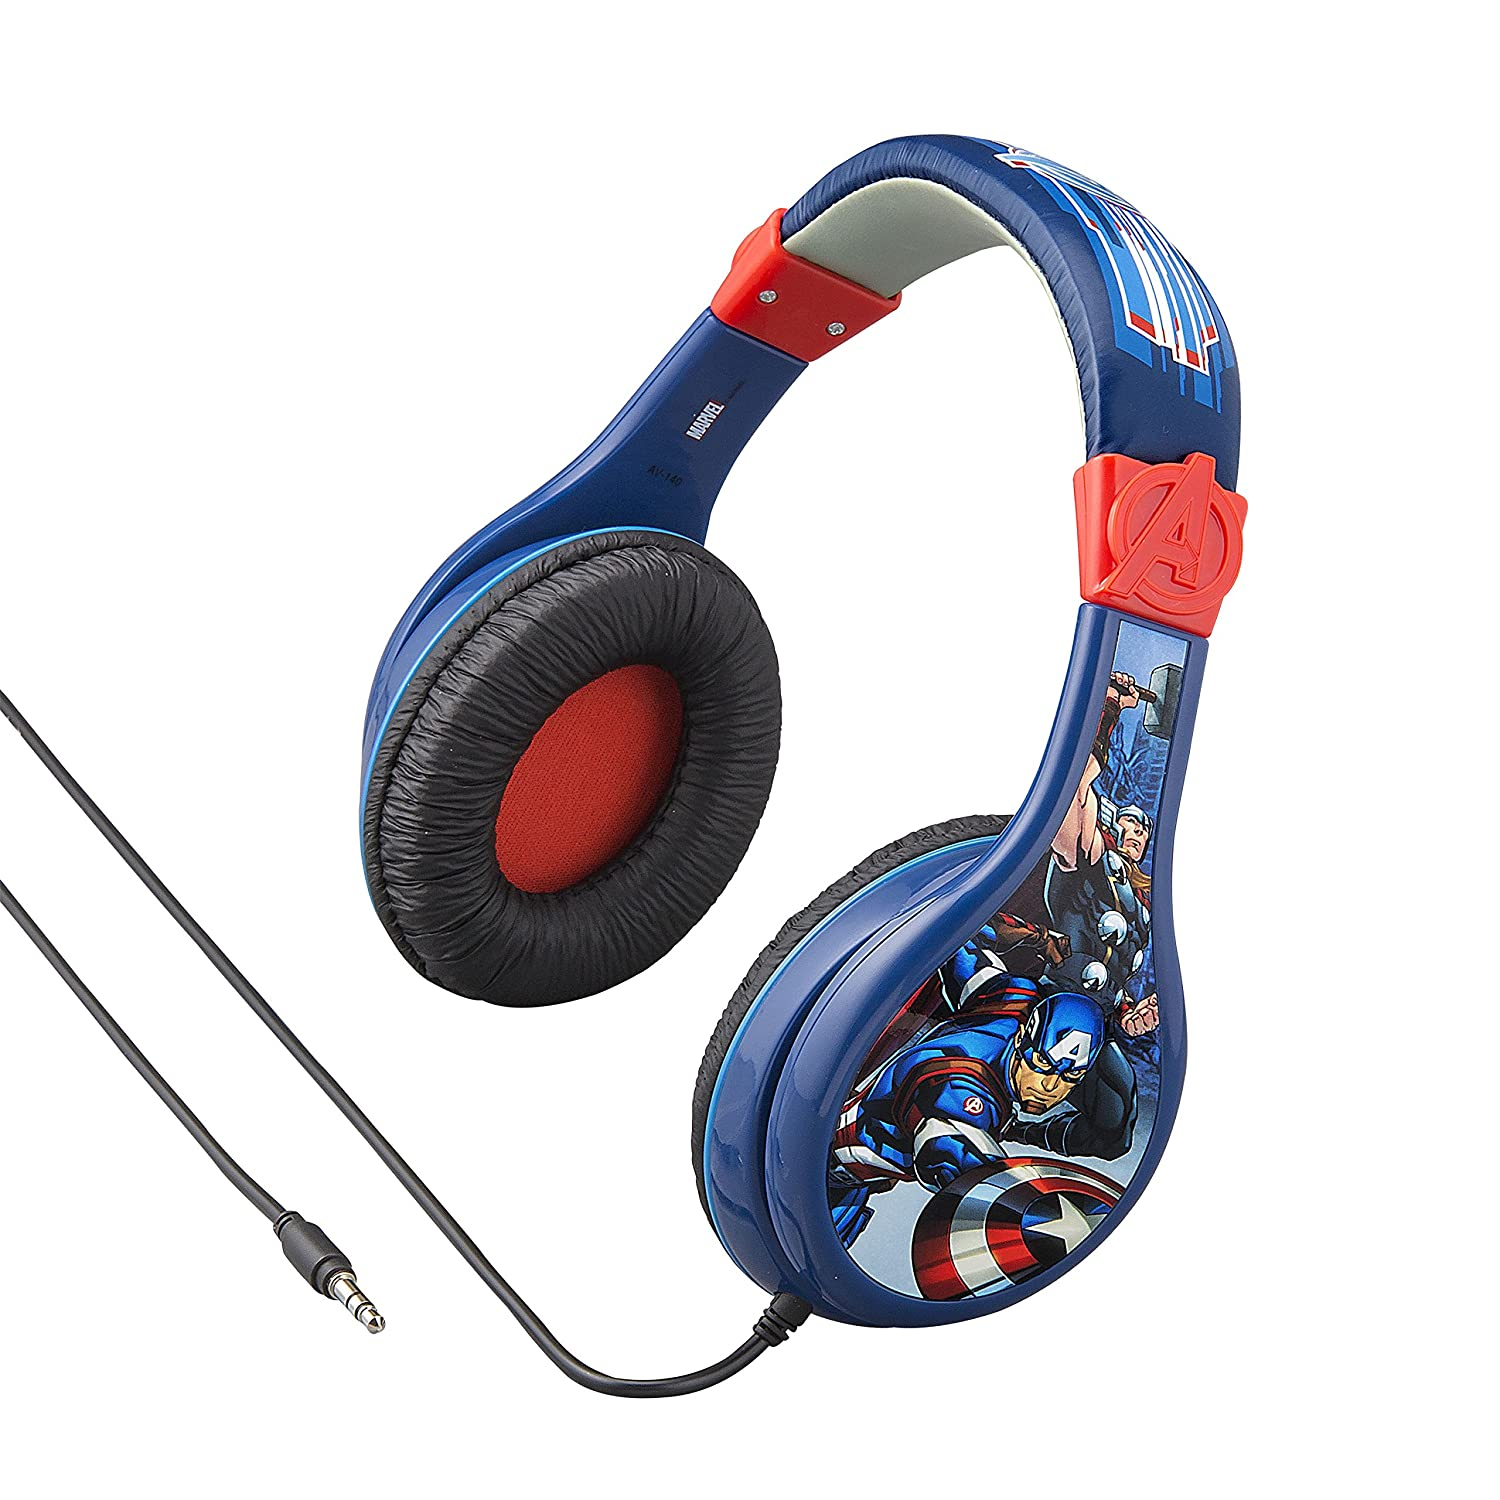 Paw Patrol Marshall Headphones for Kids with Built in Volume Limiting Feature for Kid Friendly Safe Listening KIDdesigns Inc PW-140MA.3Xv7